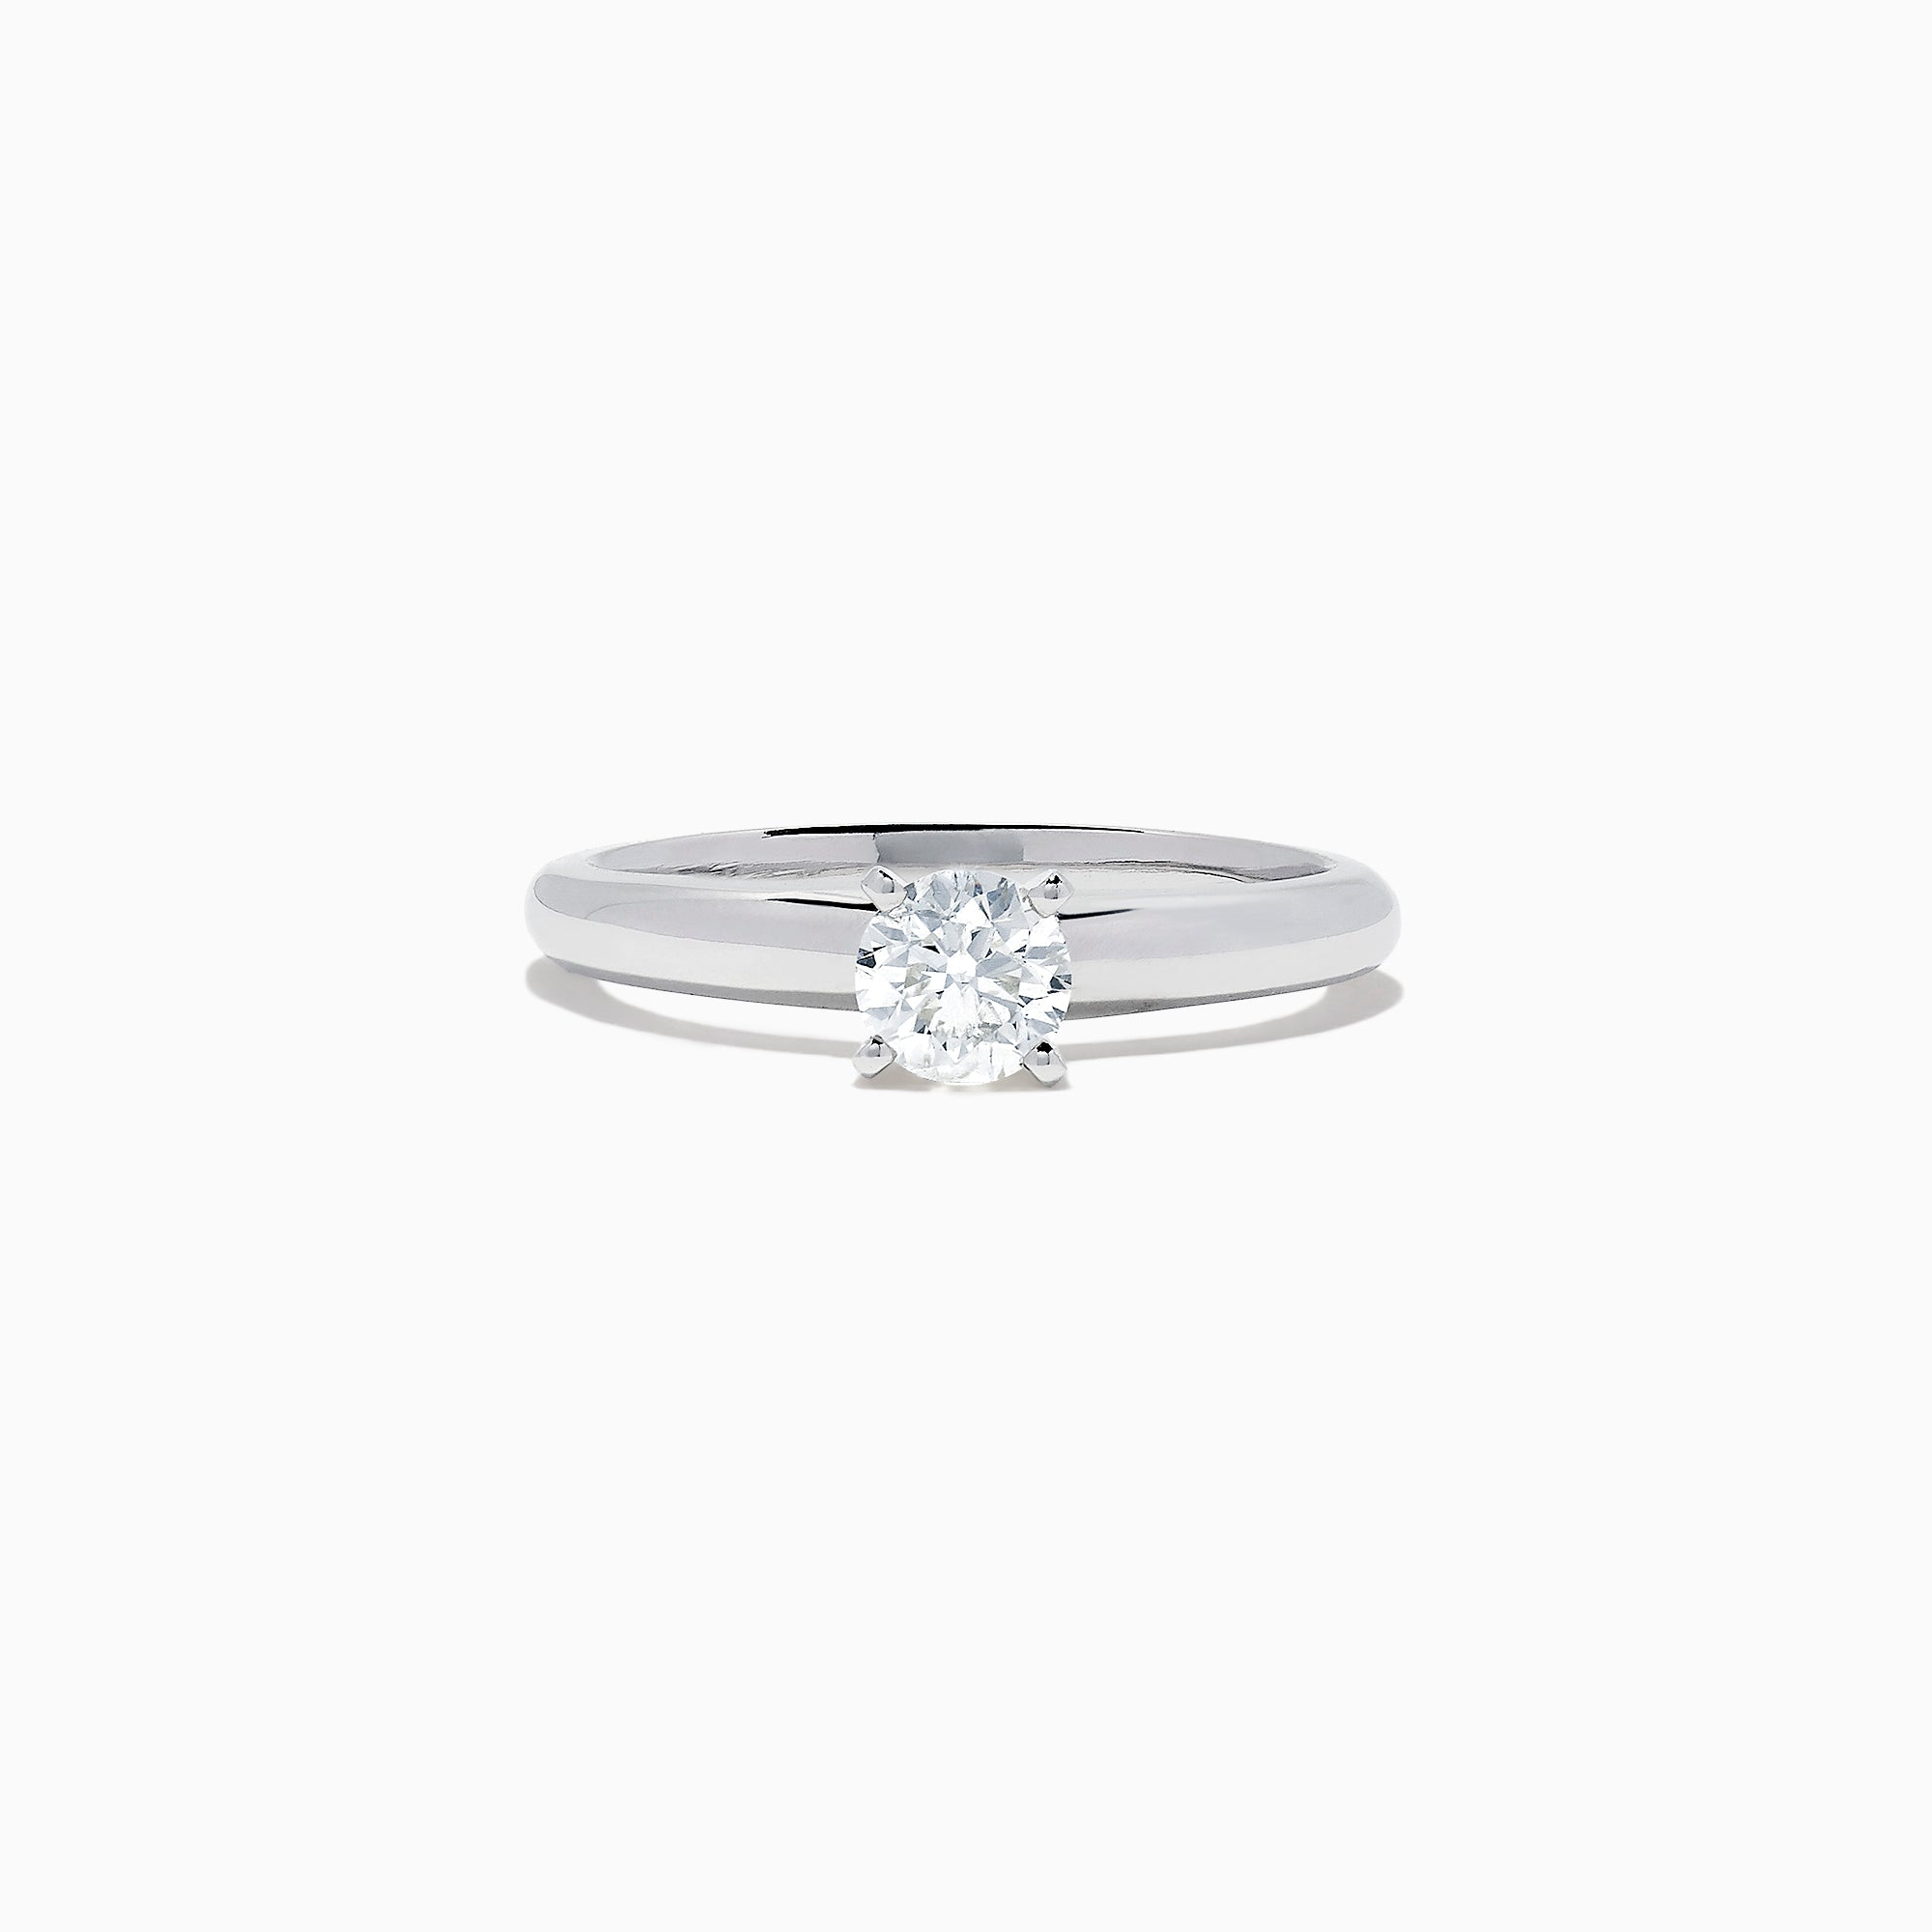 Effy Bridal 14K White Gold Diamond Solitaire Ring, 0.50 TCW